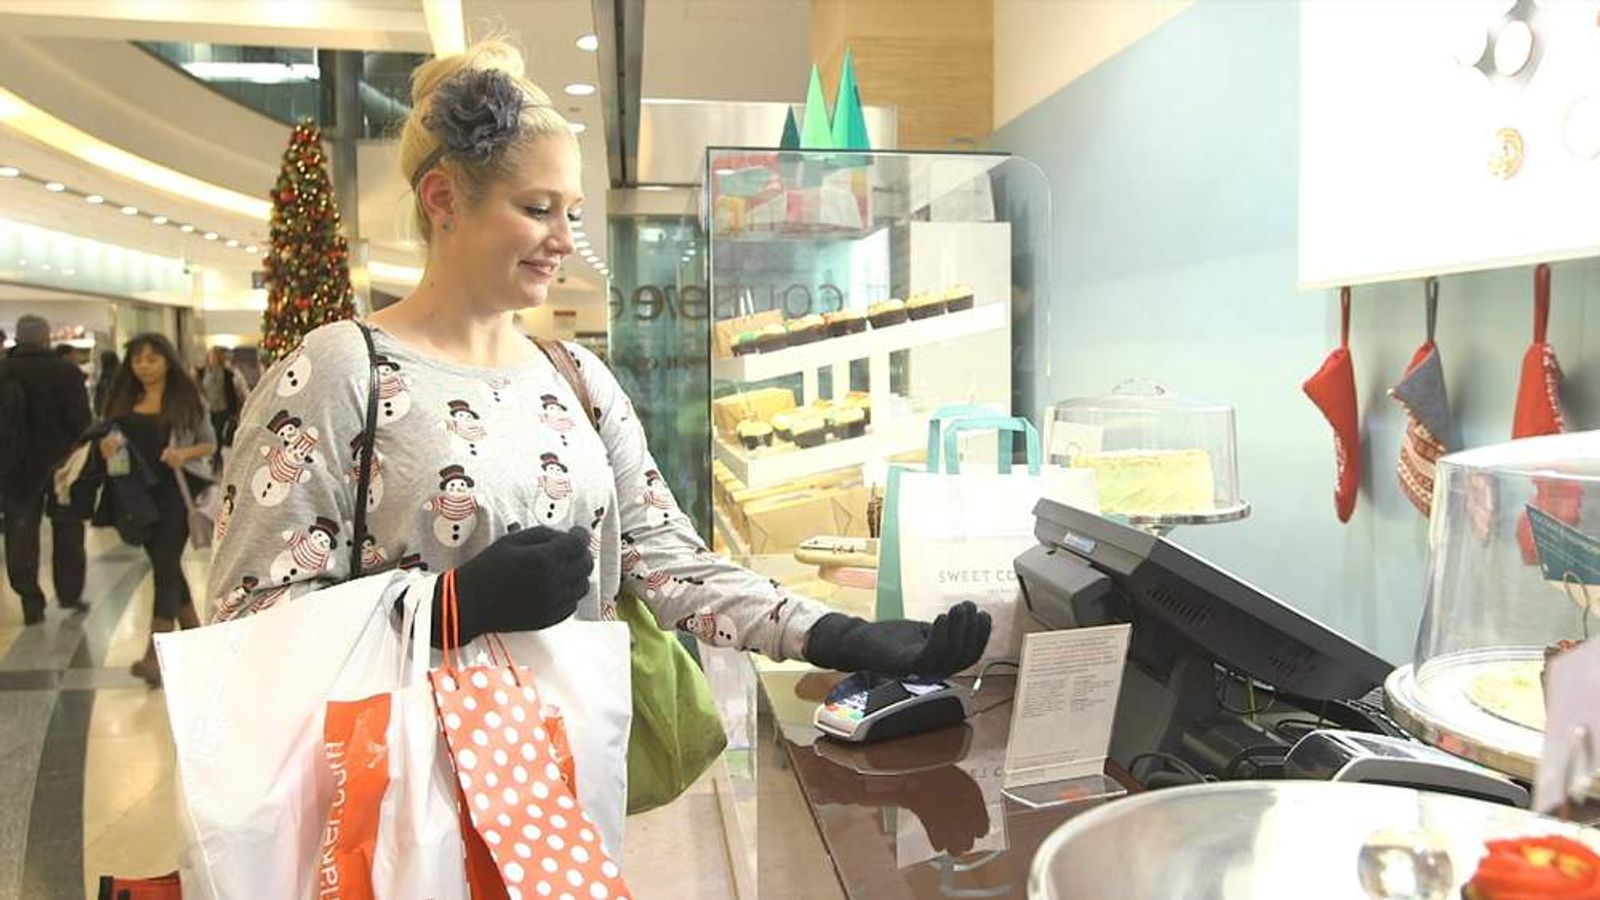 A woman pays for items in a shop using Barclaycard's payment glove at Christmas time